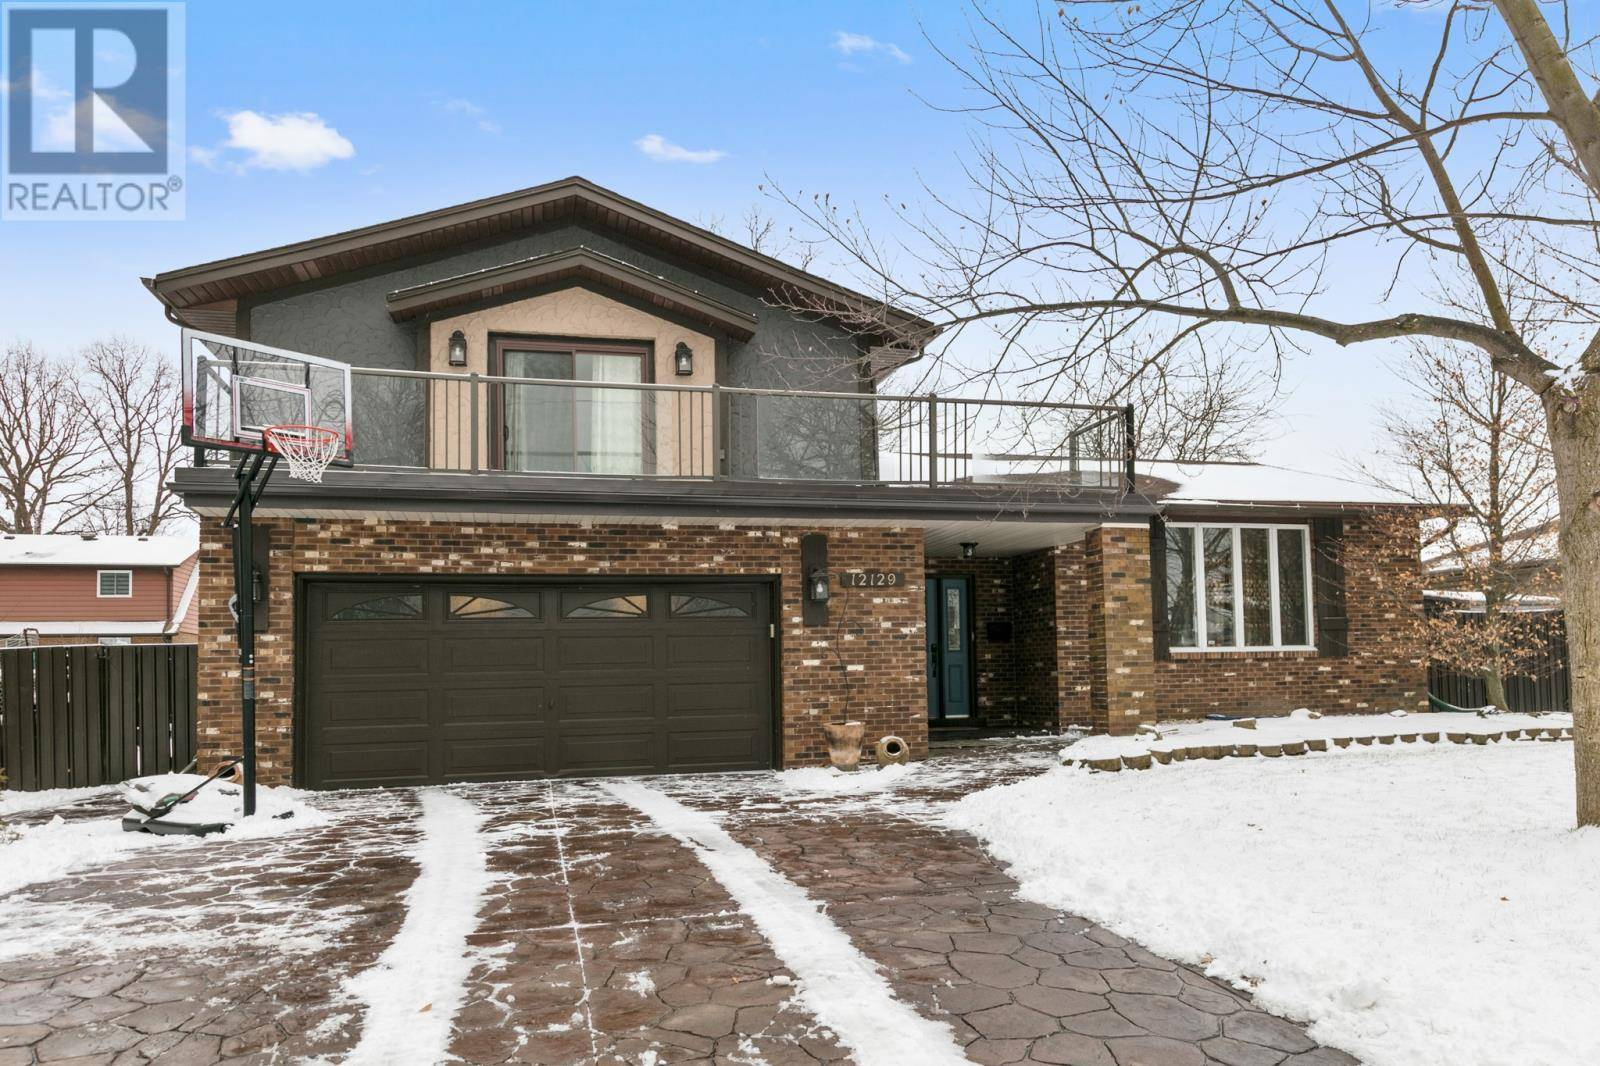 House for sale at 12129 Evergreen Dr Tecumseh Ontario - MLS: 20001616